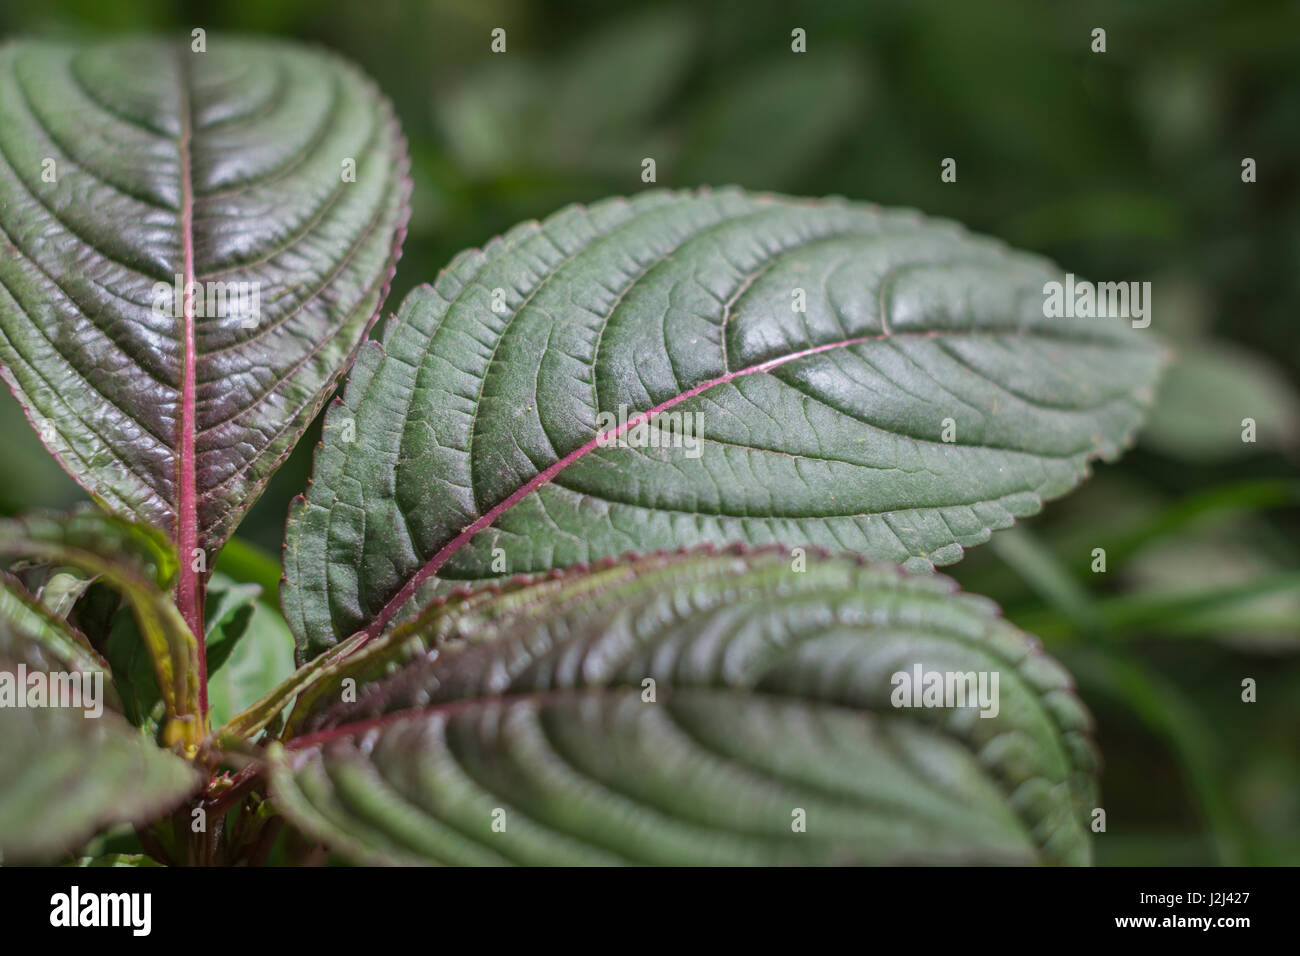 Young pre-flowering foliage / leaves of Himalayan Balsam / Impatiens glandulifera - a troublesome invasive weed Stock Photo